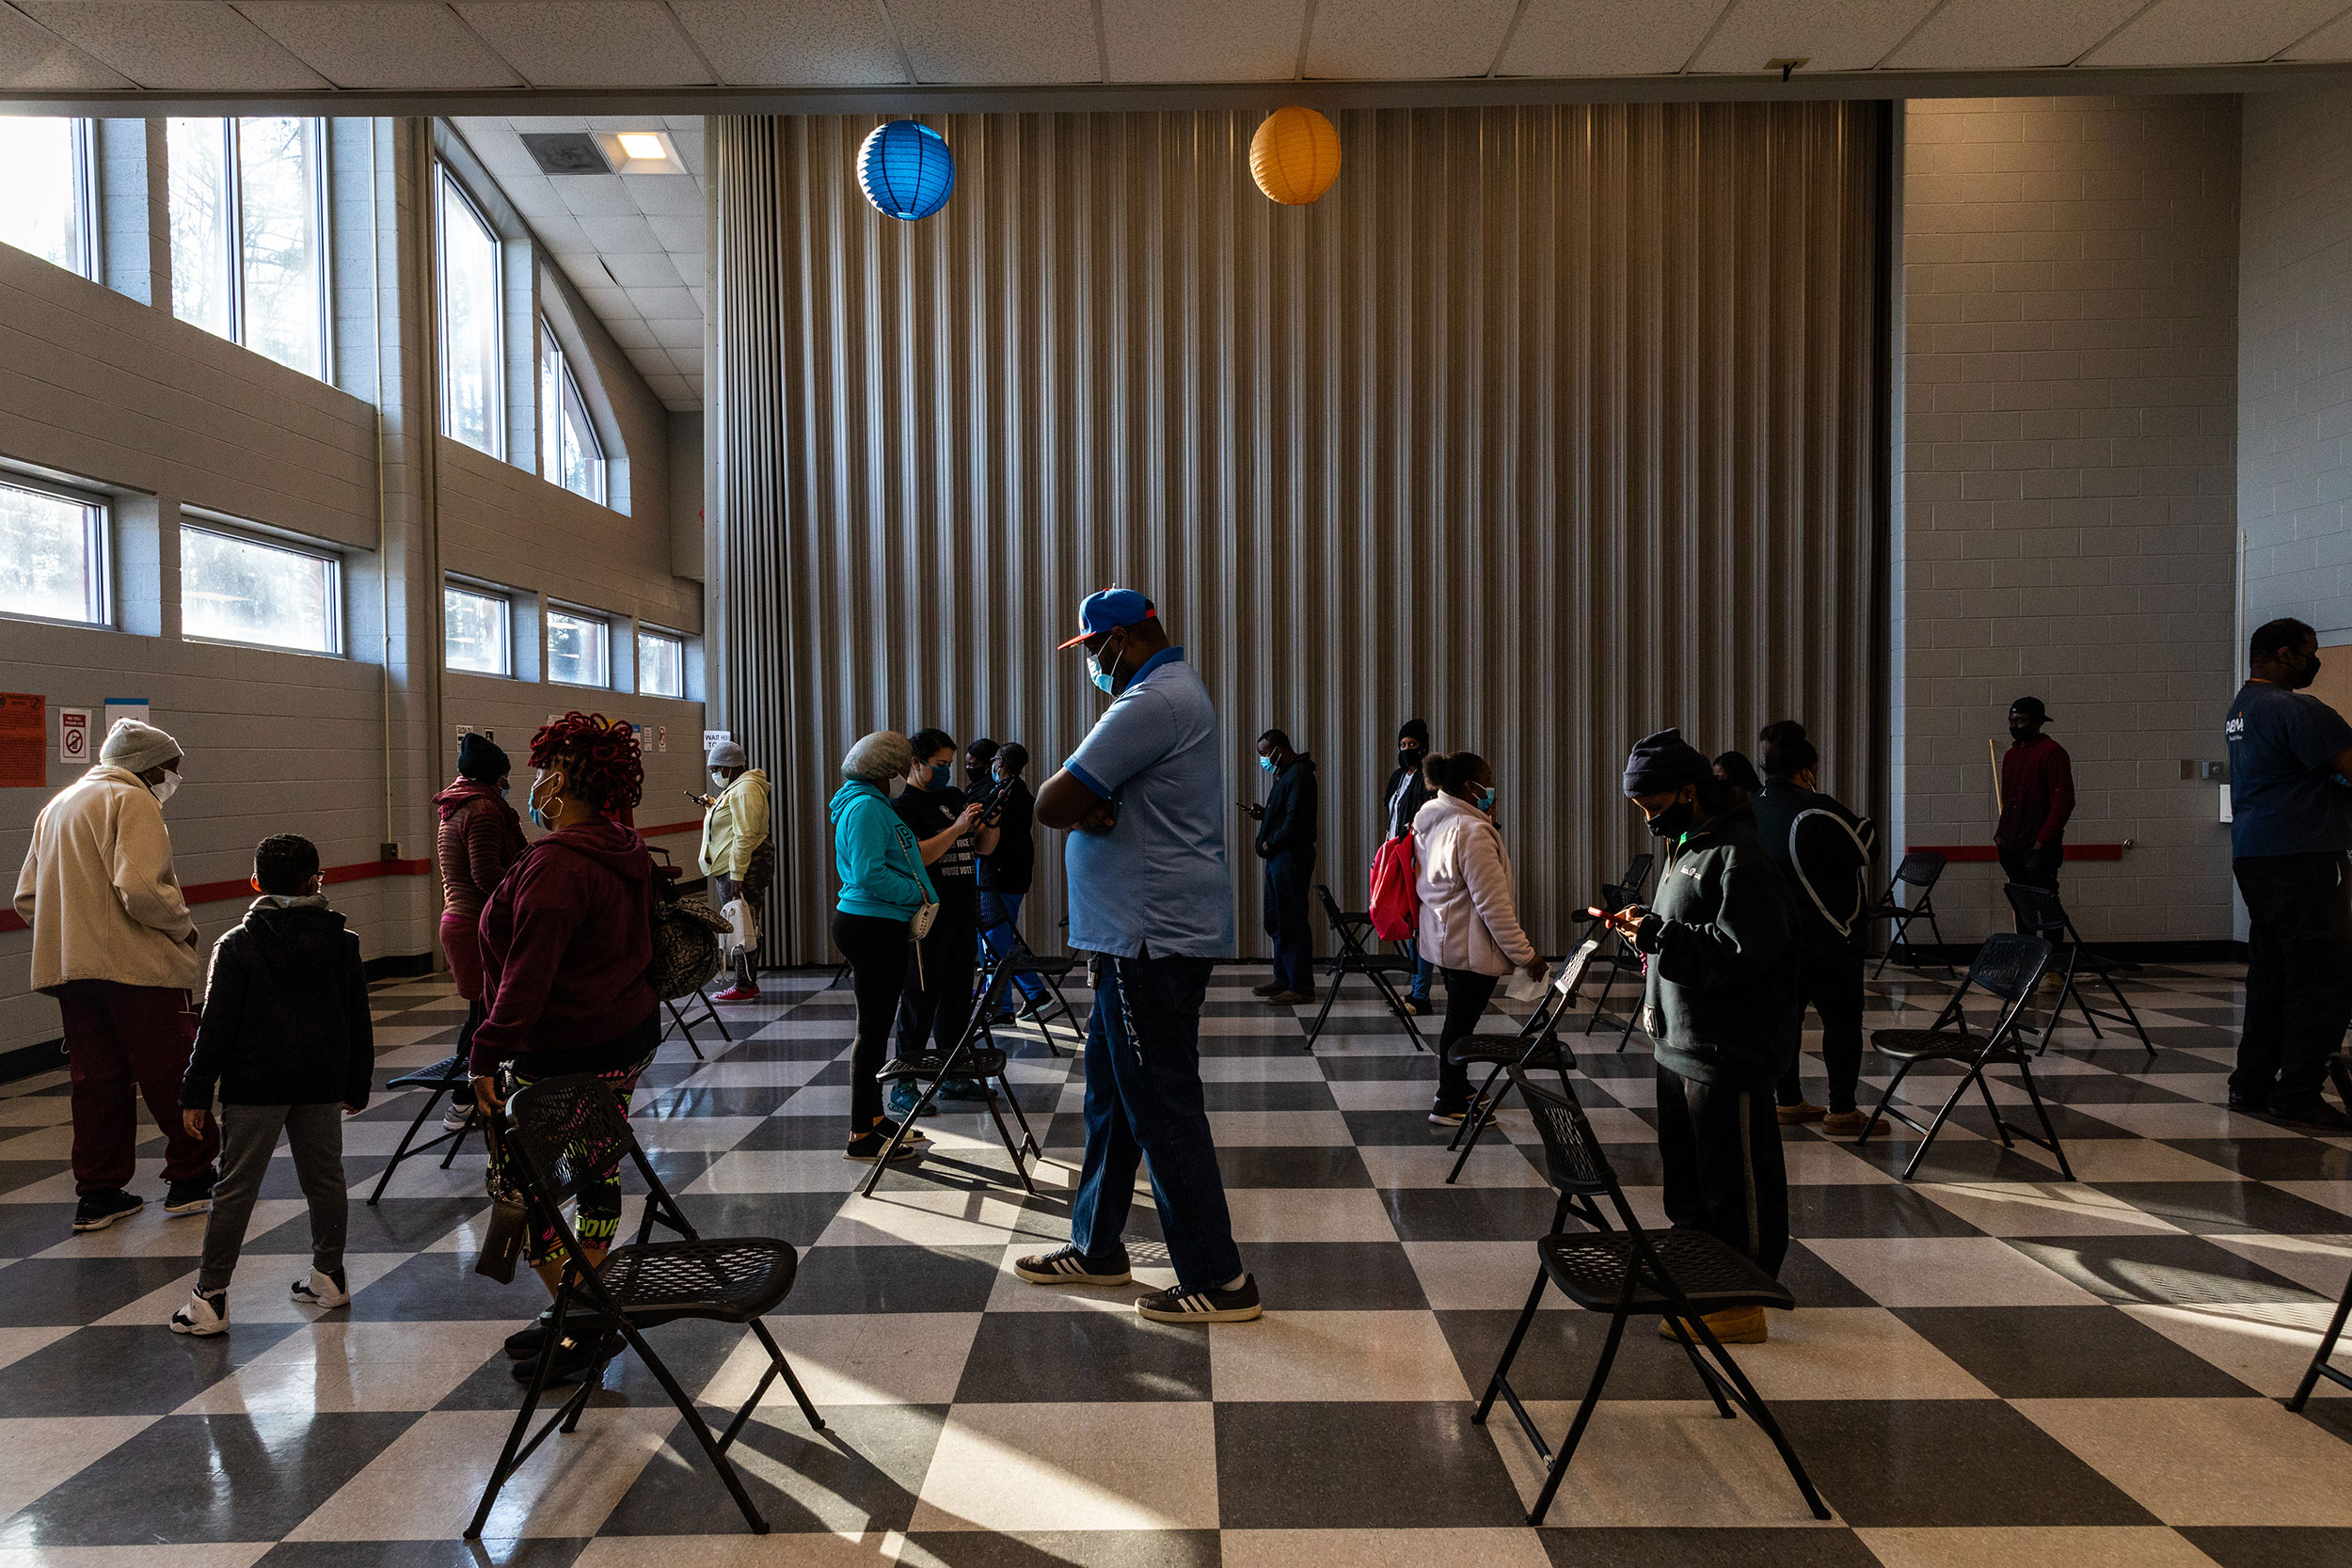 Voters stand in line to cast their ballots in Atlanta on Tuesday, January 5.